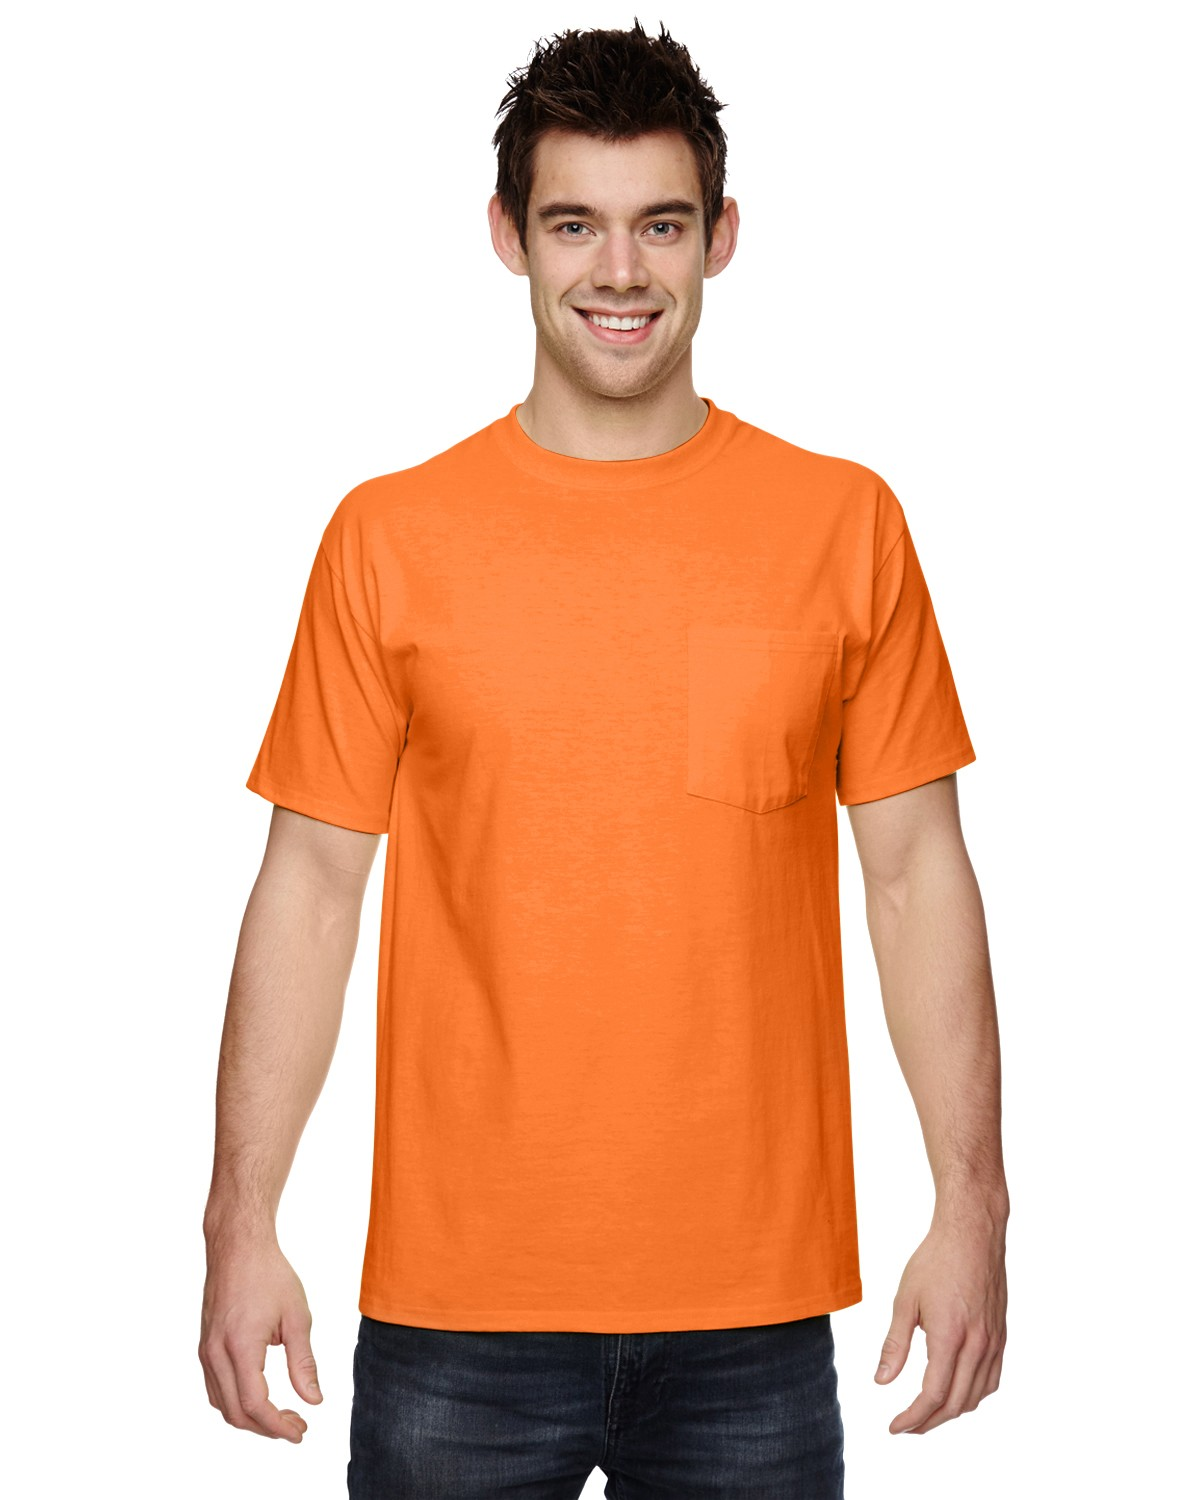 3931P Fruit of the Loom SAFETY ORANGE